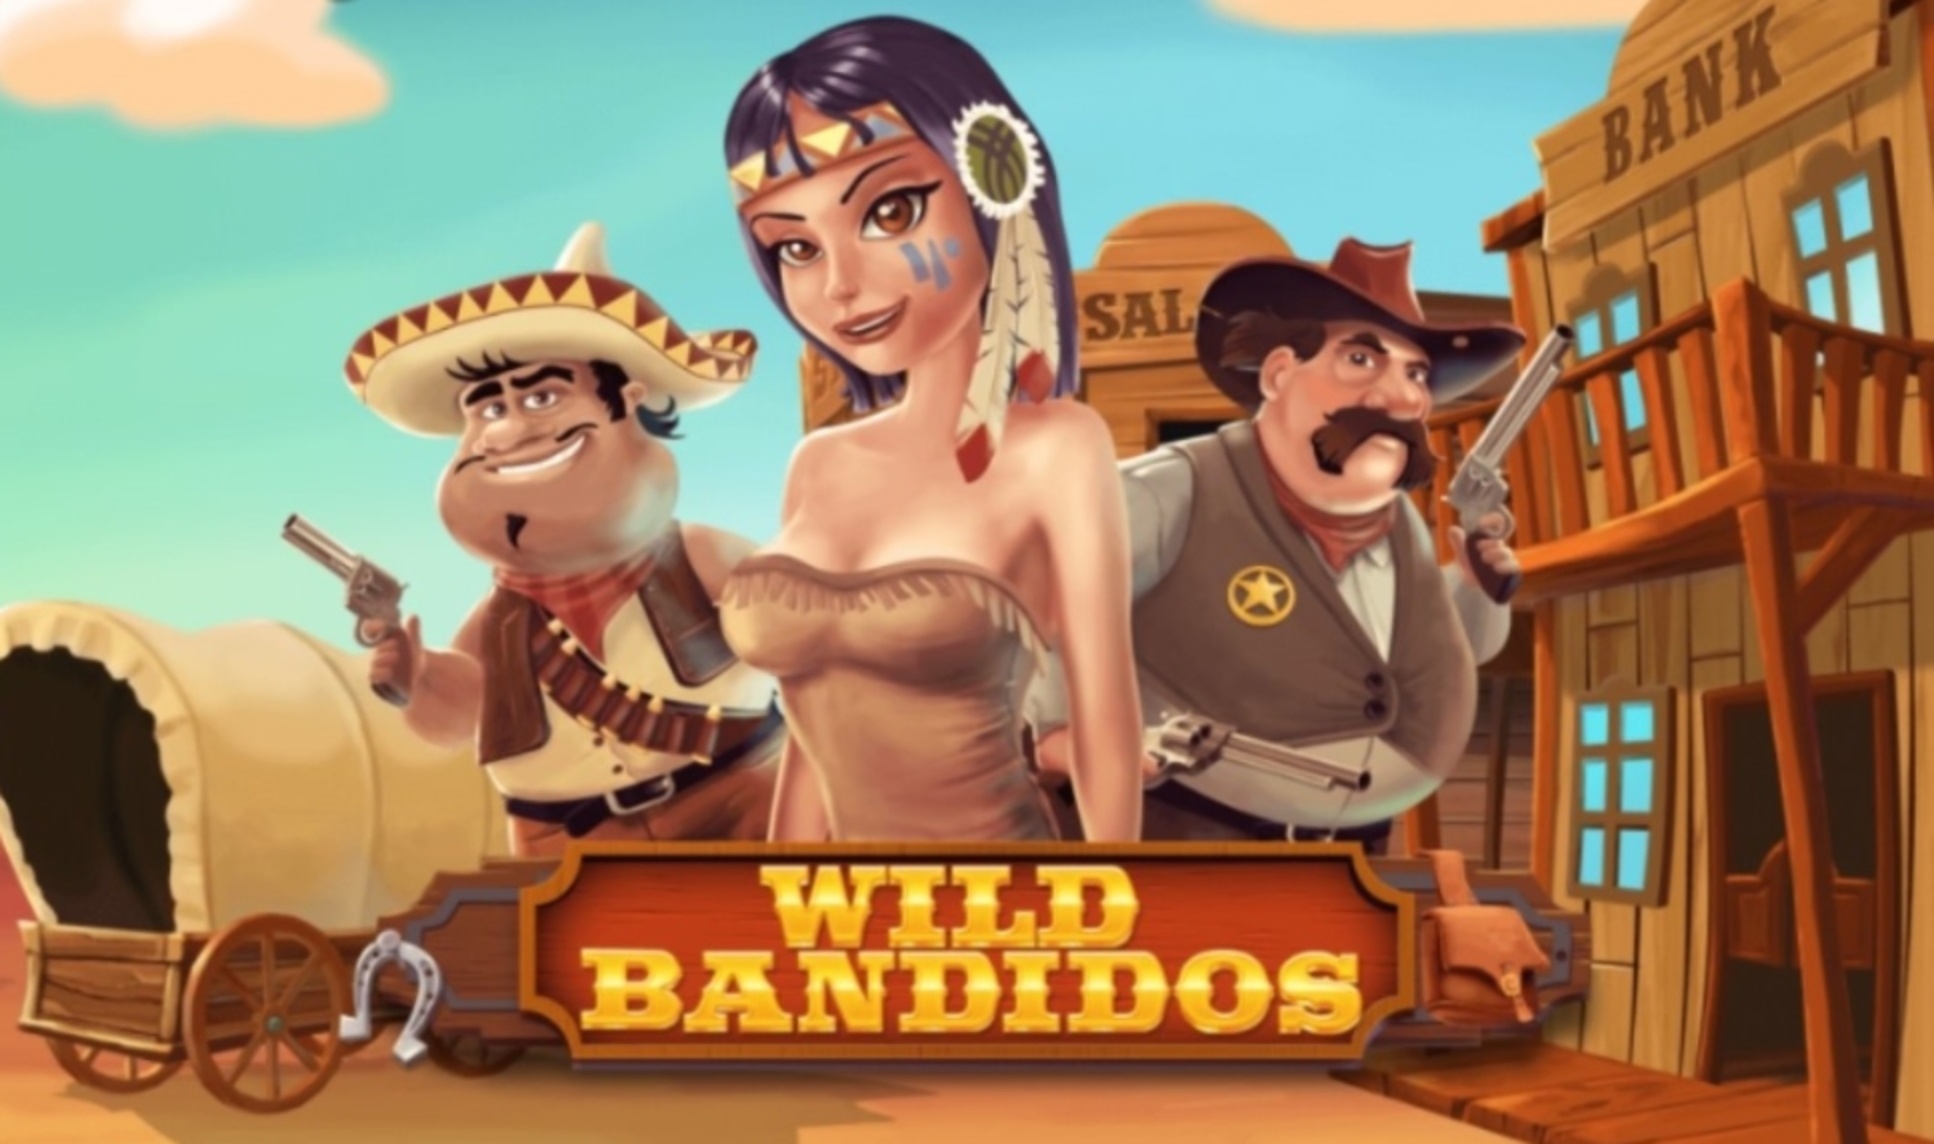 The Wild Bandidos Online Slot Demo Game by 7mojos